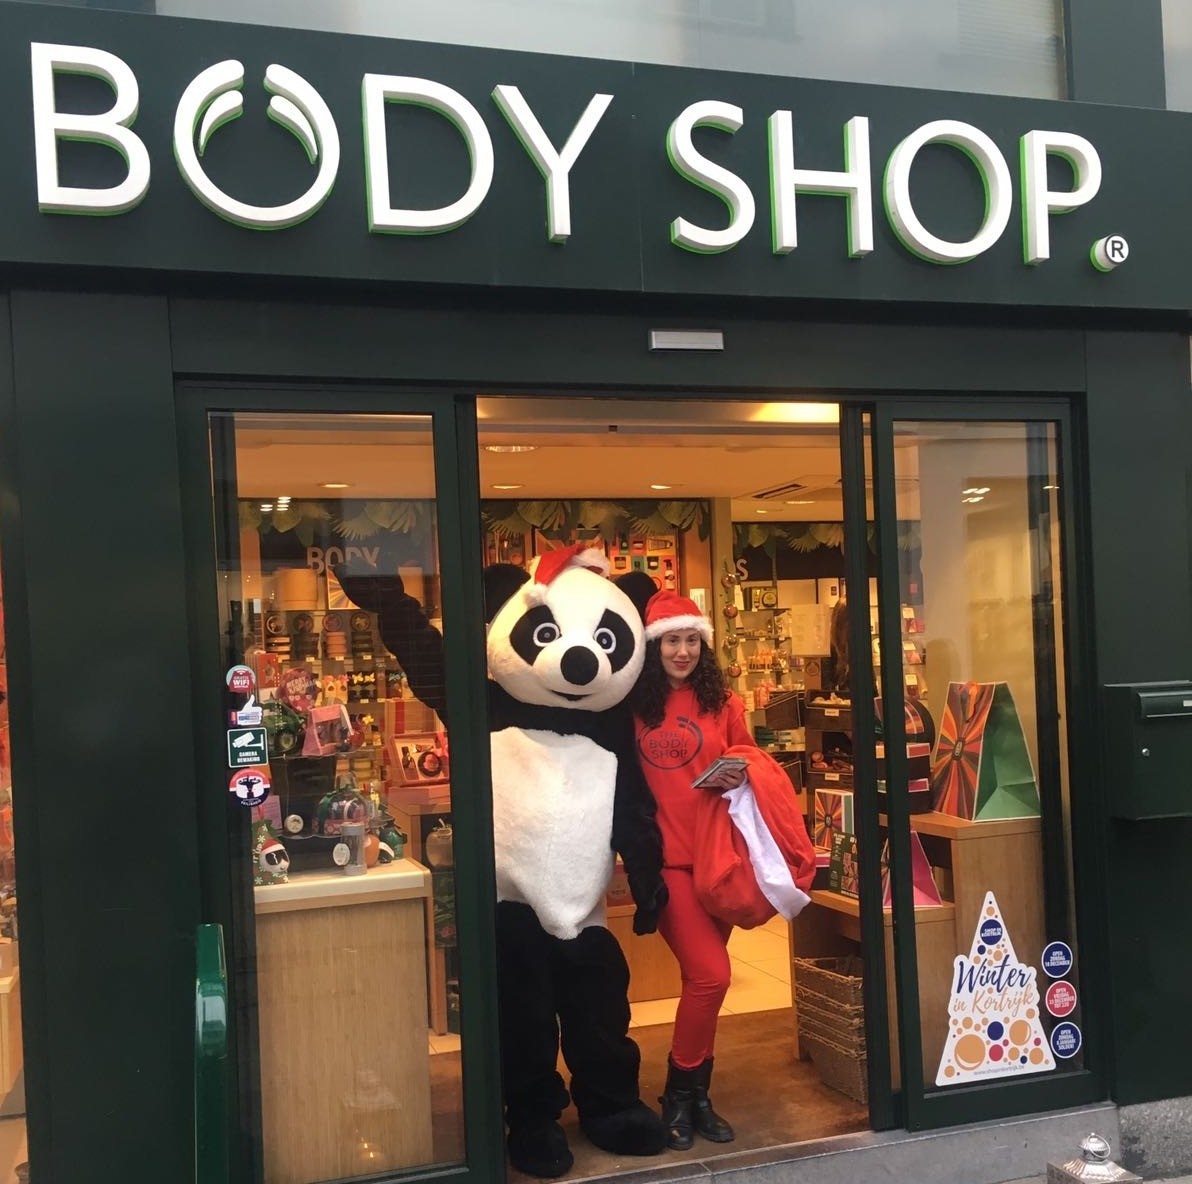 The Body Shop - Wild Tour - House of Rebels